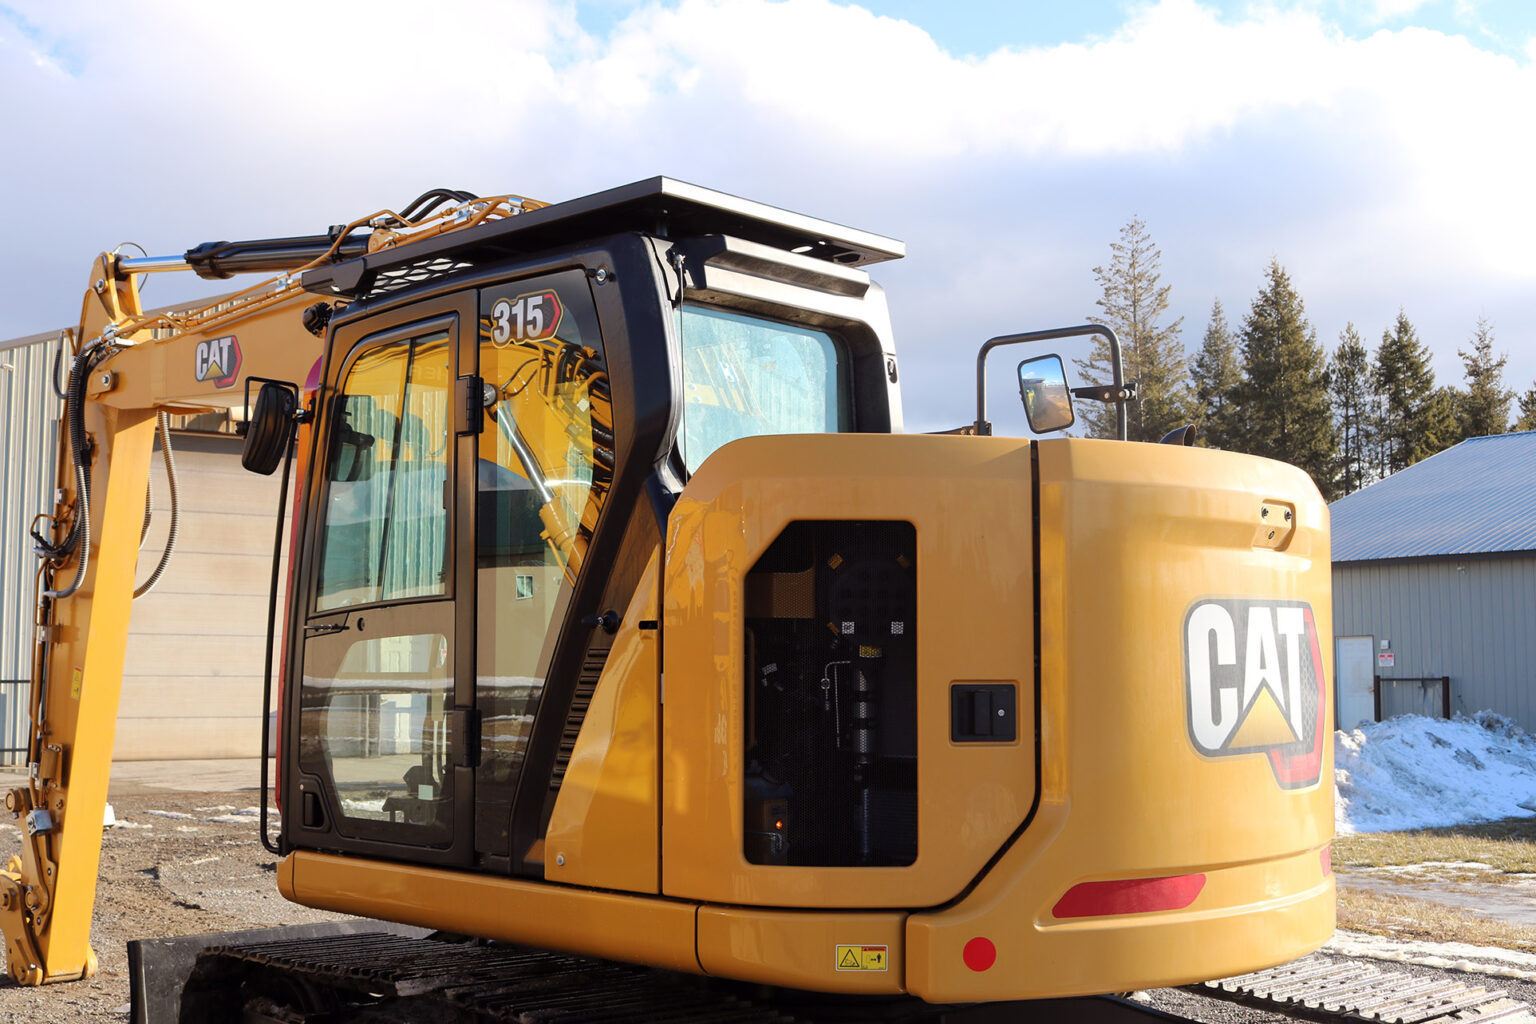 Caterpillar 315 Next Gen Bolt on Top Cab Guard